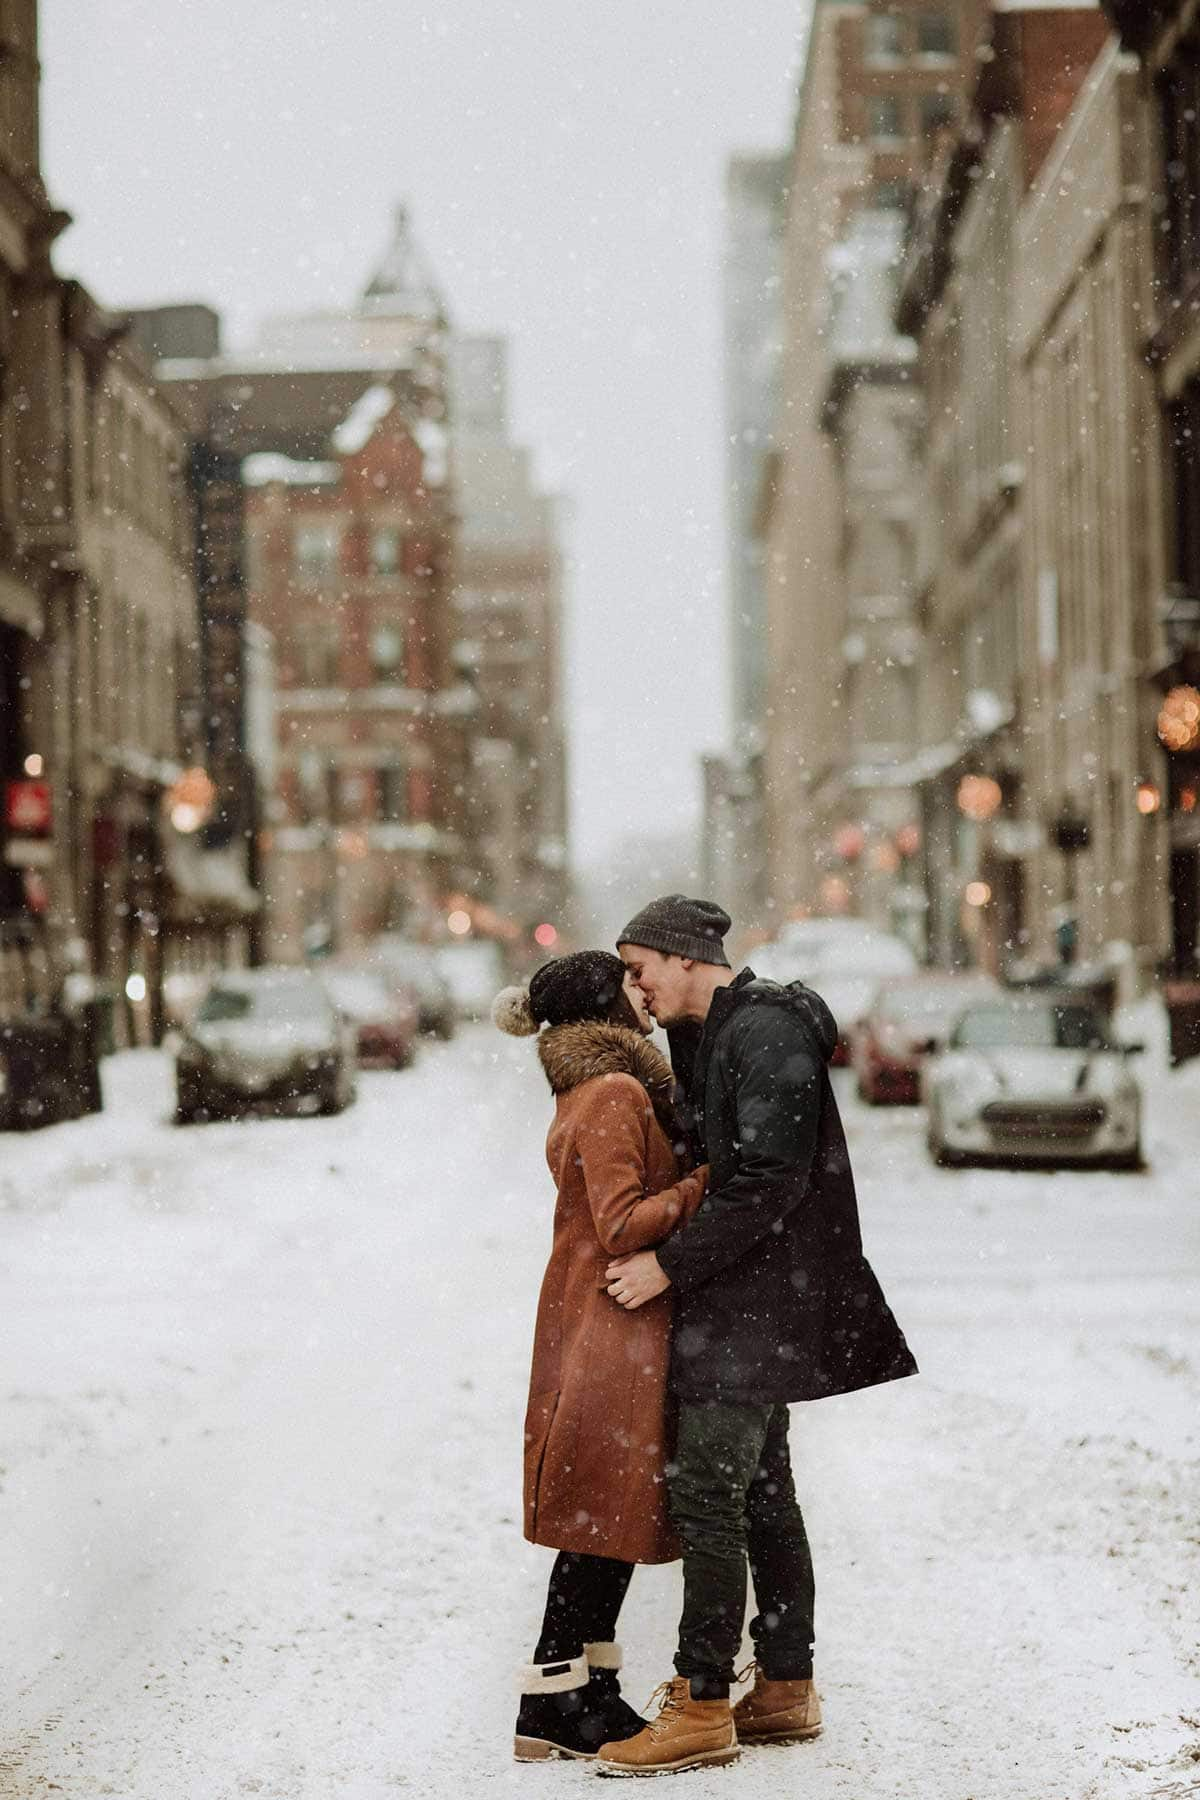 The street kiss. Urban engagement session in snowy old port Montreal with photographer Brent Calis.